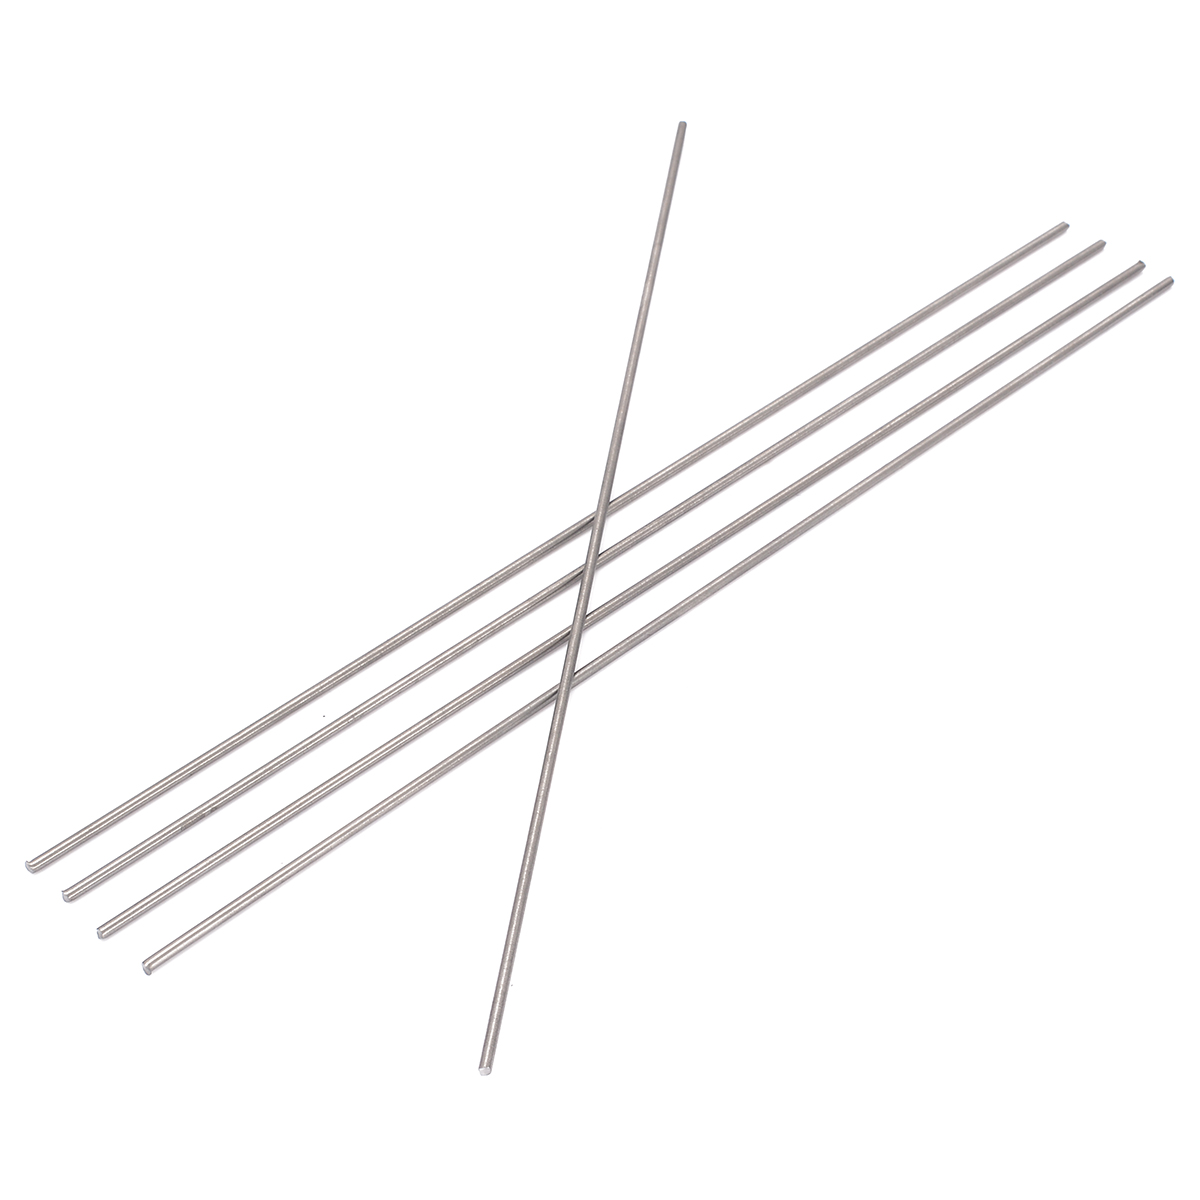 5pcs Round Ti Bar Grade 5 Metal Rods 2*250mm Titanium Sticks For Manufacturing Gas Turbine Components